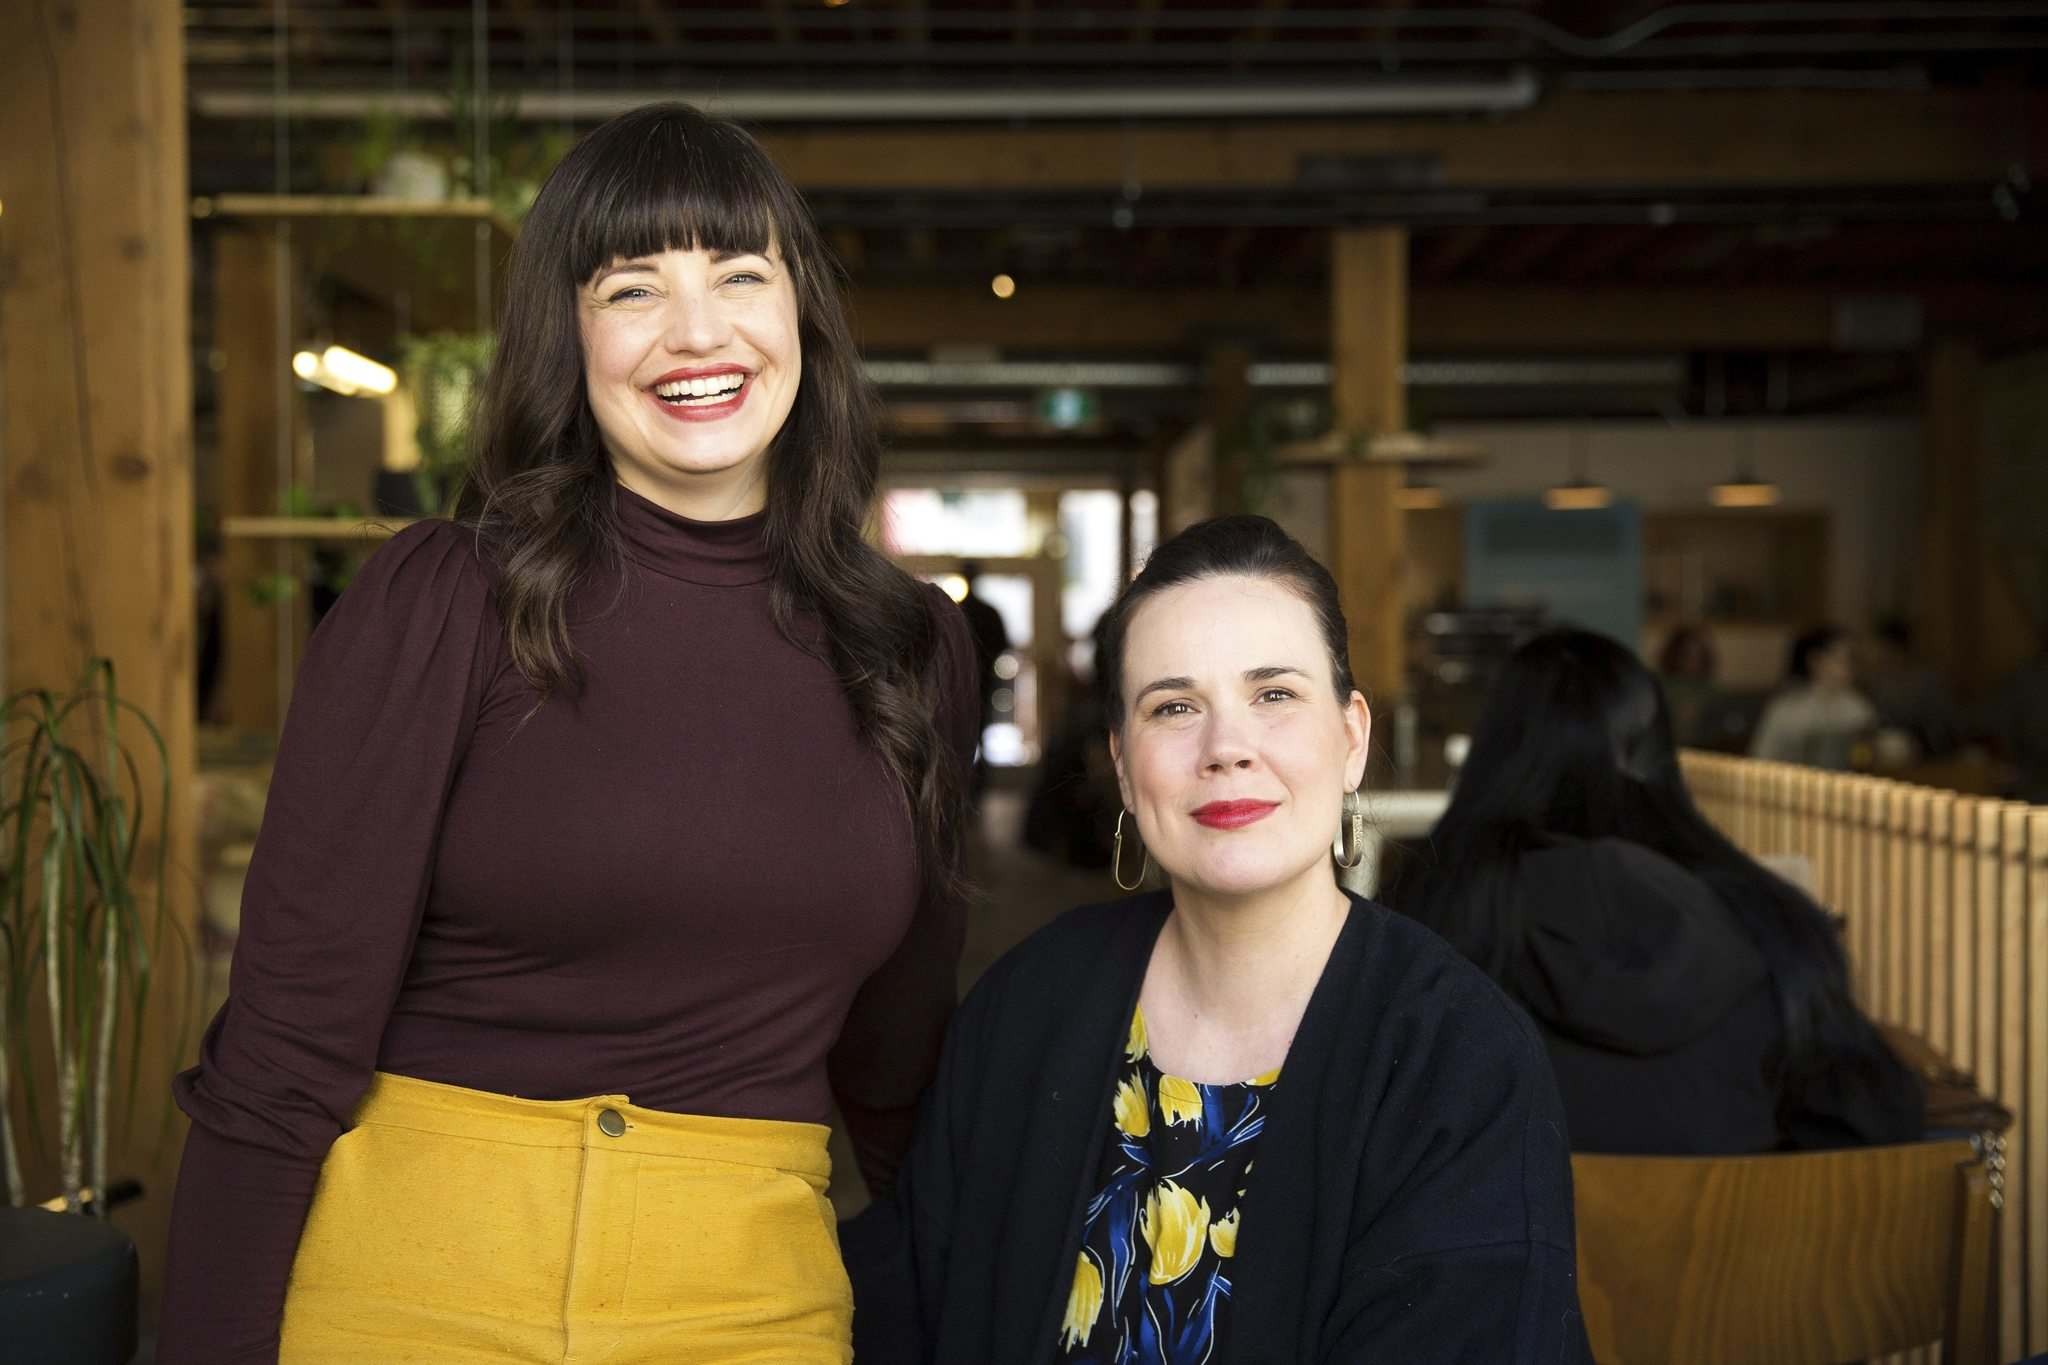 MIKAELA MACKENZIE/WINNIPEG FREE PRESS</p><p>Elise Epp (left) and Katherine Magne are co-organizers of the Winnipeg Fashion Revolution Week.</p></p>